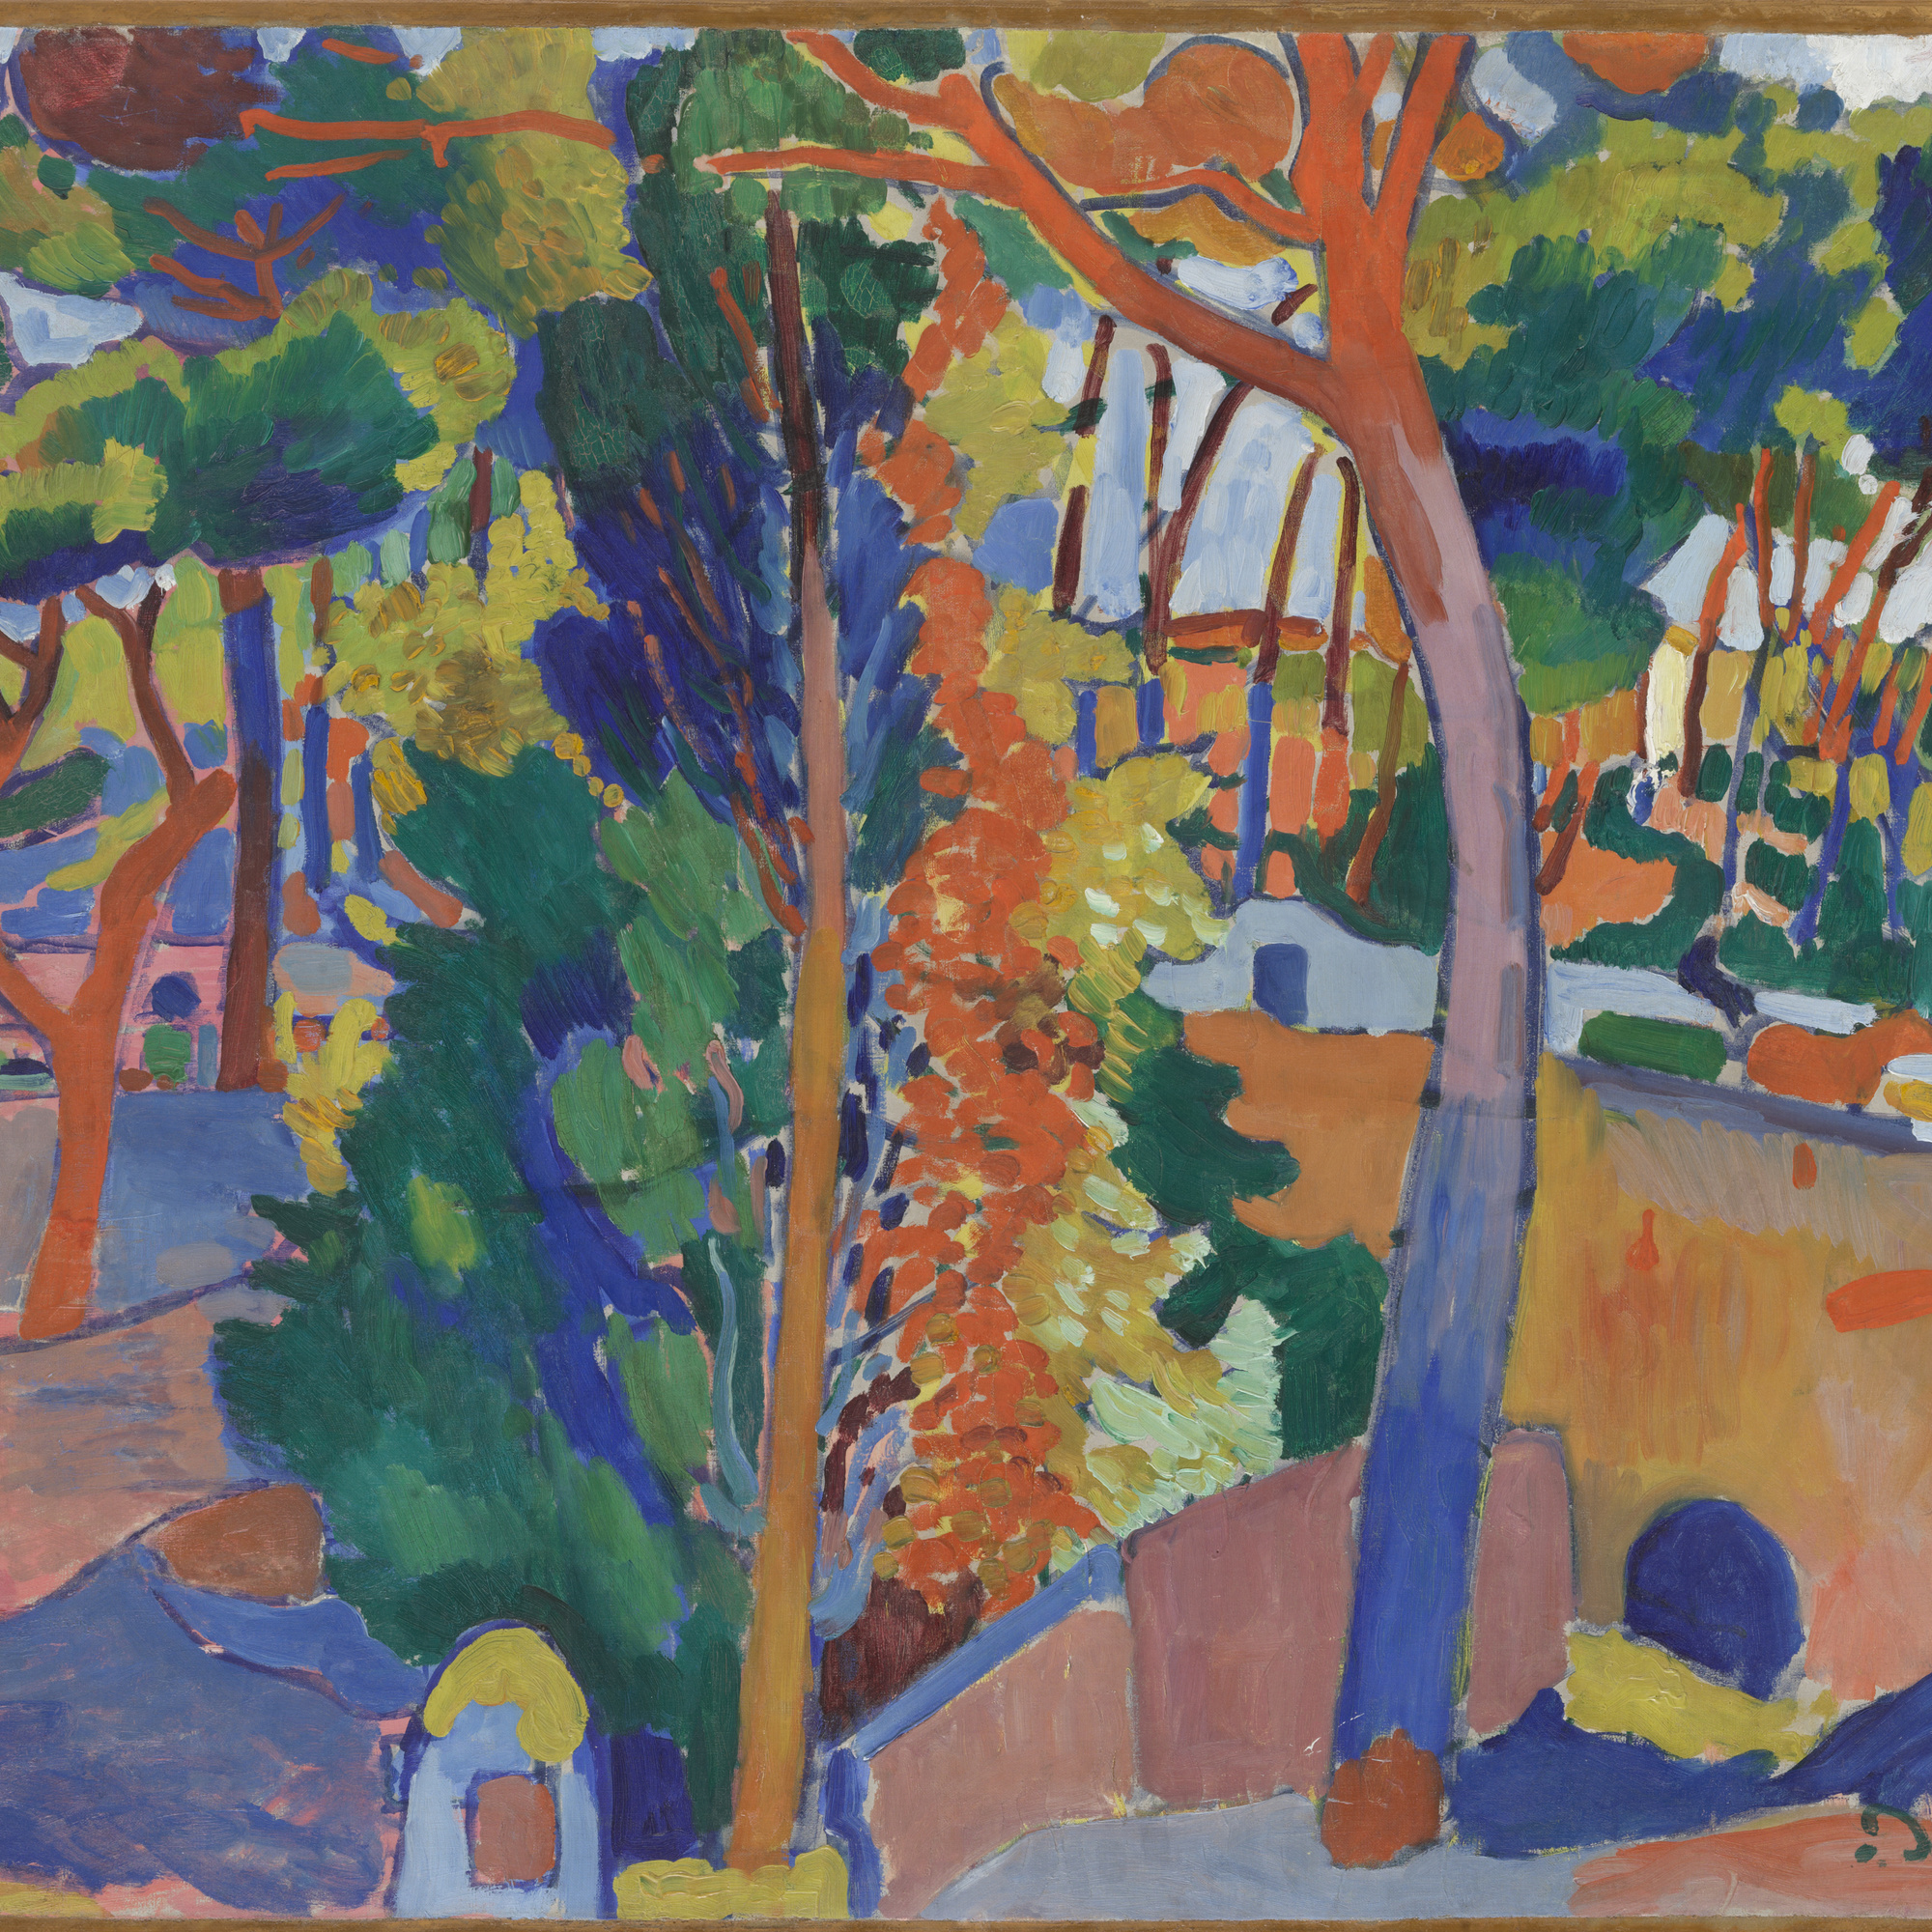 André Derain. Bridge over the Riou. 1906. Oil on canvas, 32 1/2 × 40″ (82.6 × 101.6 cm). The William S. Paley Collection. © 2016 Artists Rights Society (ARS), New York / ADAGP, Paris. Photo: Thomas Griesel